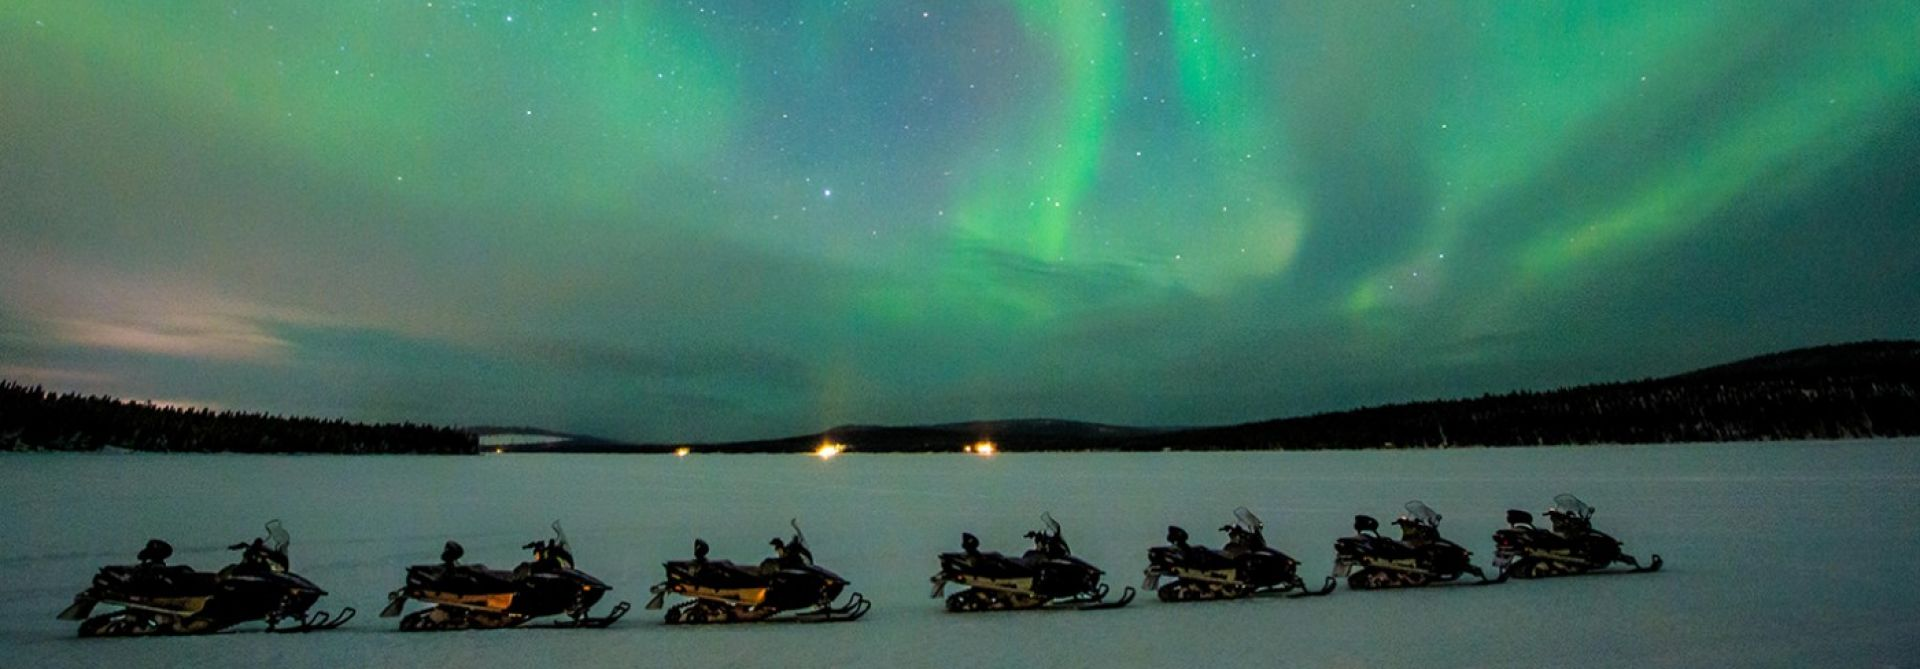 Snowmobile & Northern Lights at Icehotel, Sweden